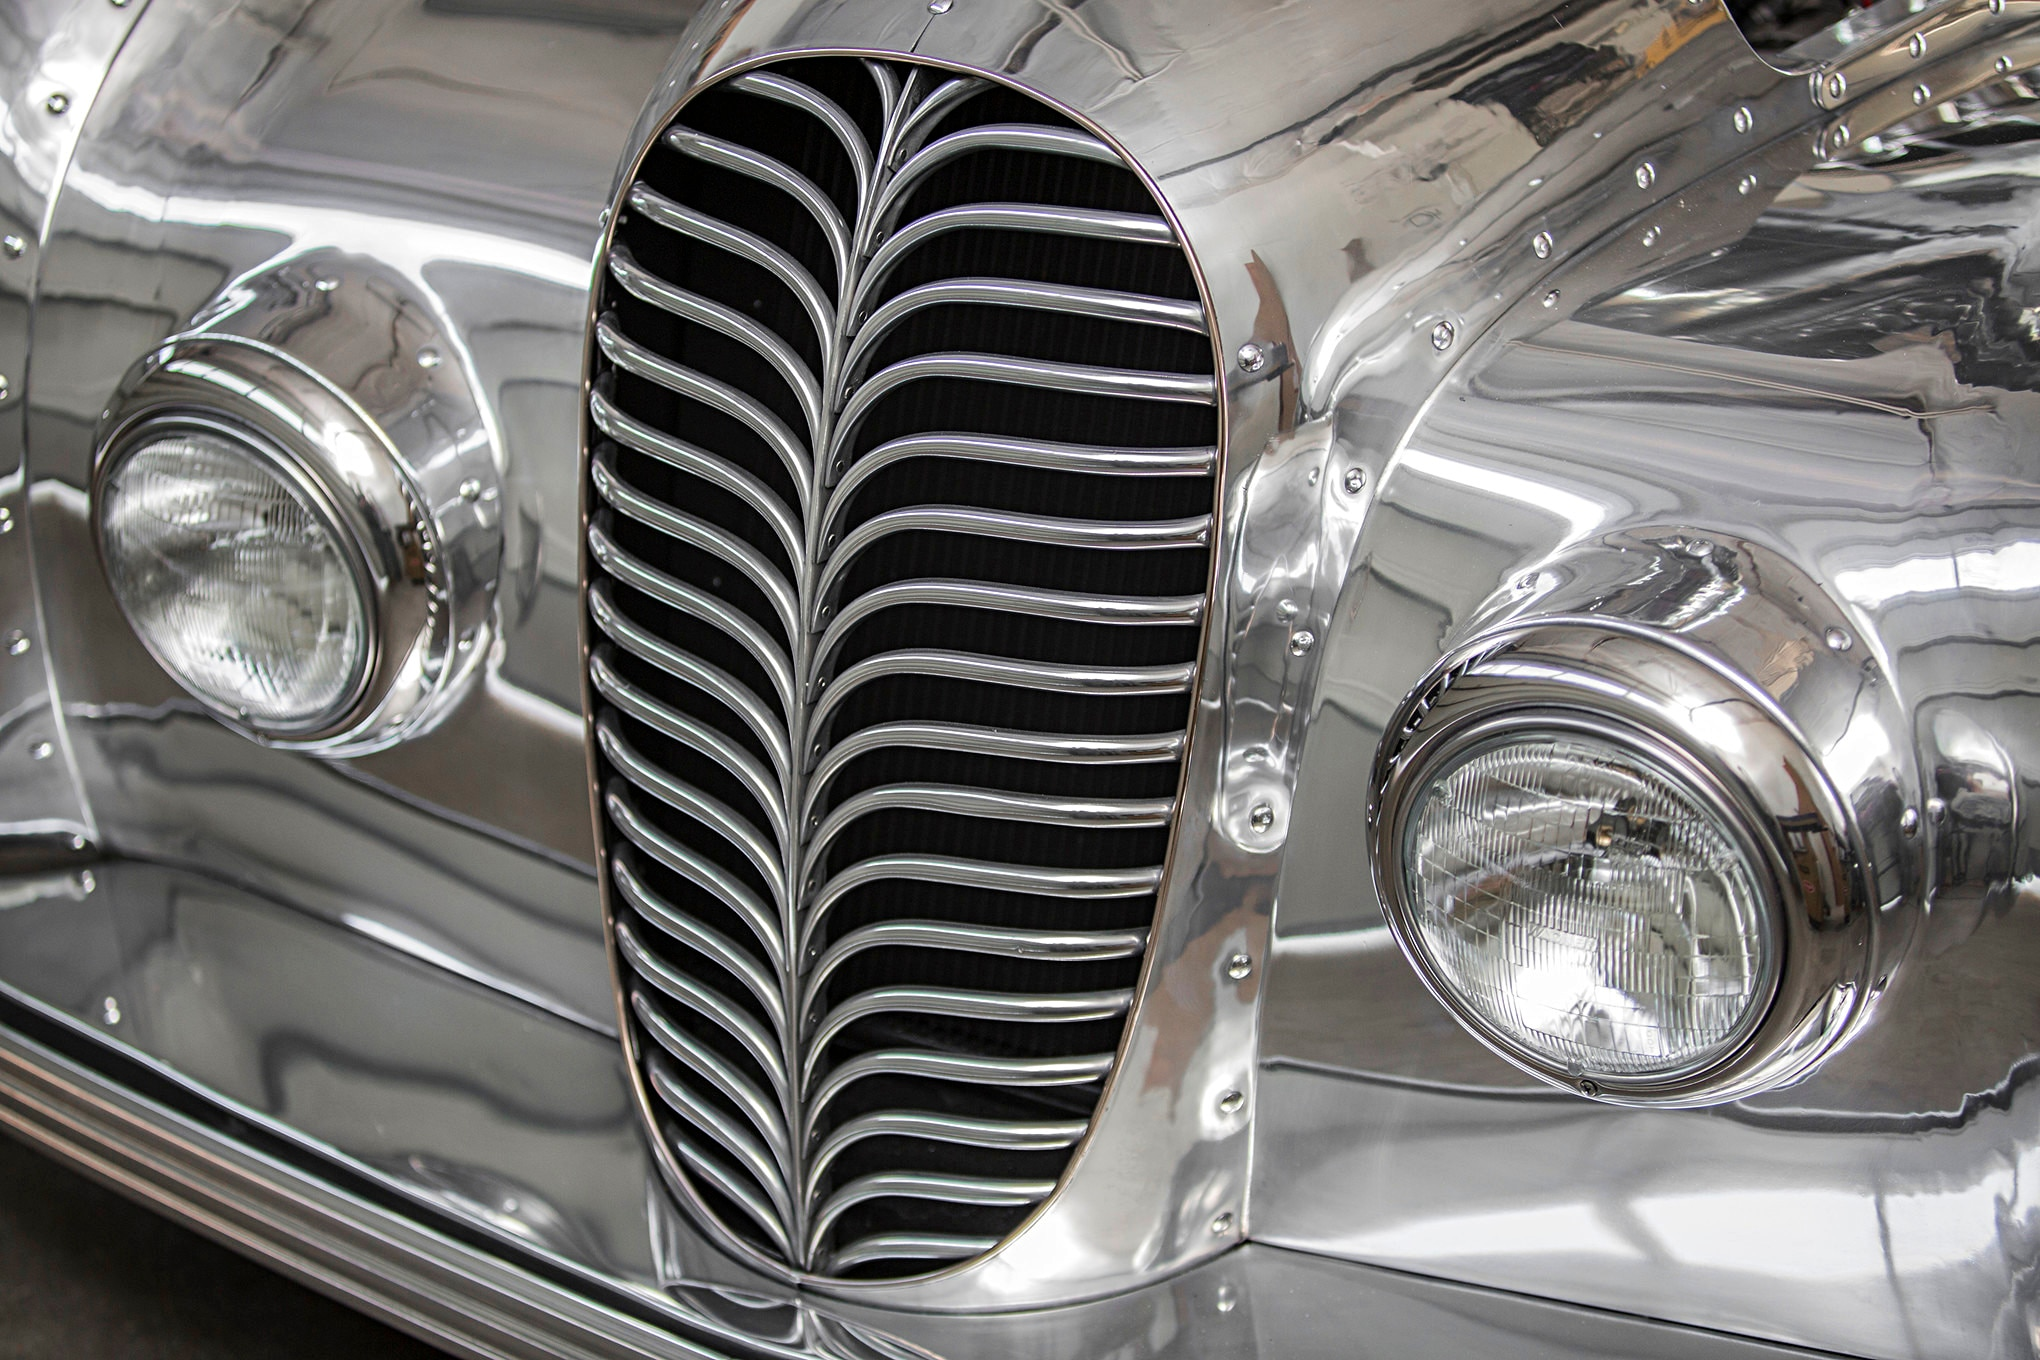 Initially Randy thought a horizontal grille, like the one employed by the Delahaye 145, was the way to go on the Dodici. An initial mockup showed that the grille needed a bit more substance. A vase provided the inspiration Randy needed. The pattern on the vase resembled a feather, and was made by pulling a set of horizontal lines downward with a perpendicular brushstroke. To duplicate the look, randy used a remarkably simple round form mounted in his bench vise, which simultaneously crimped the end of the aluminum tube and gave it a smooth radius 90-degree bend.